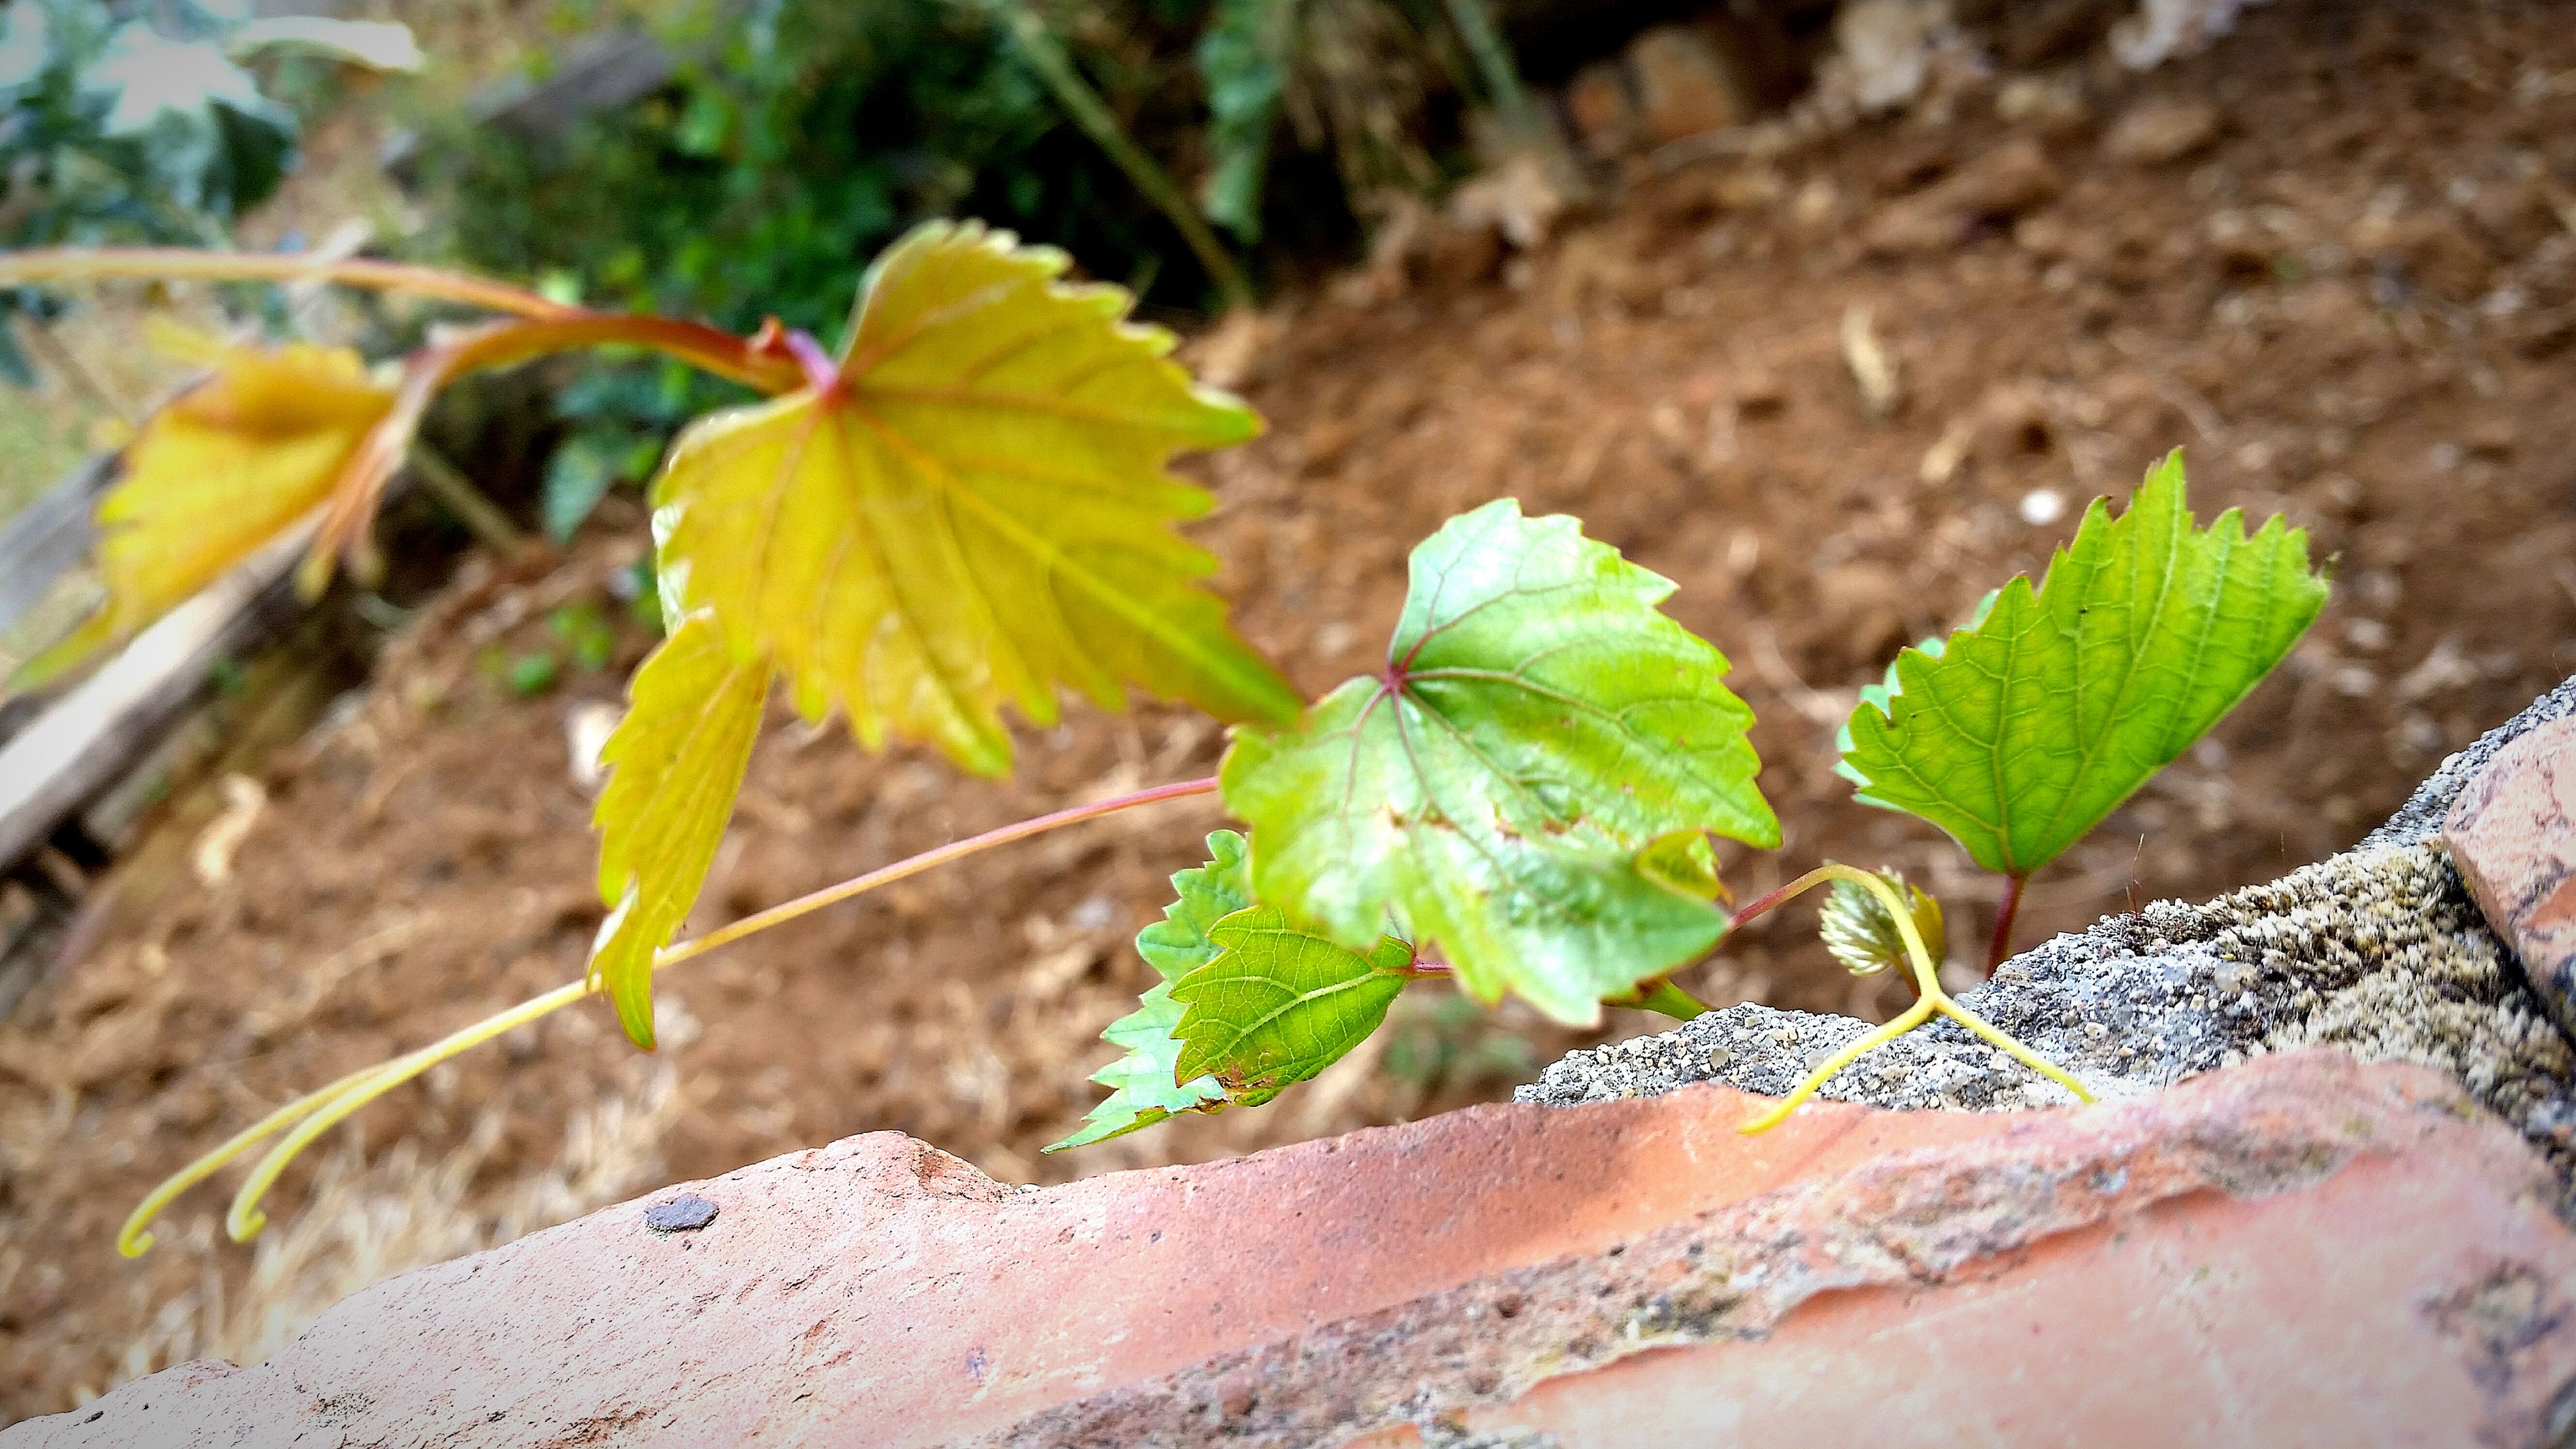 leaf, focus on foreground, green color, close-up, plant, growth, nature, leaf vein, outdoors, day, beauty in nature, yellow, no people, growing, fragility, leaves, stem, sunlight, high angle view, green